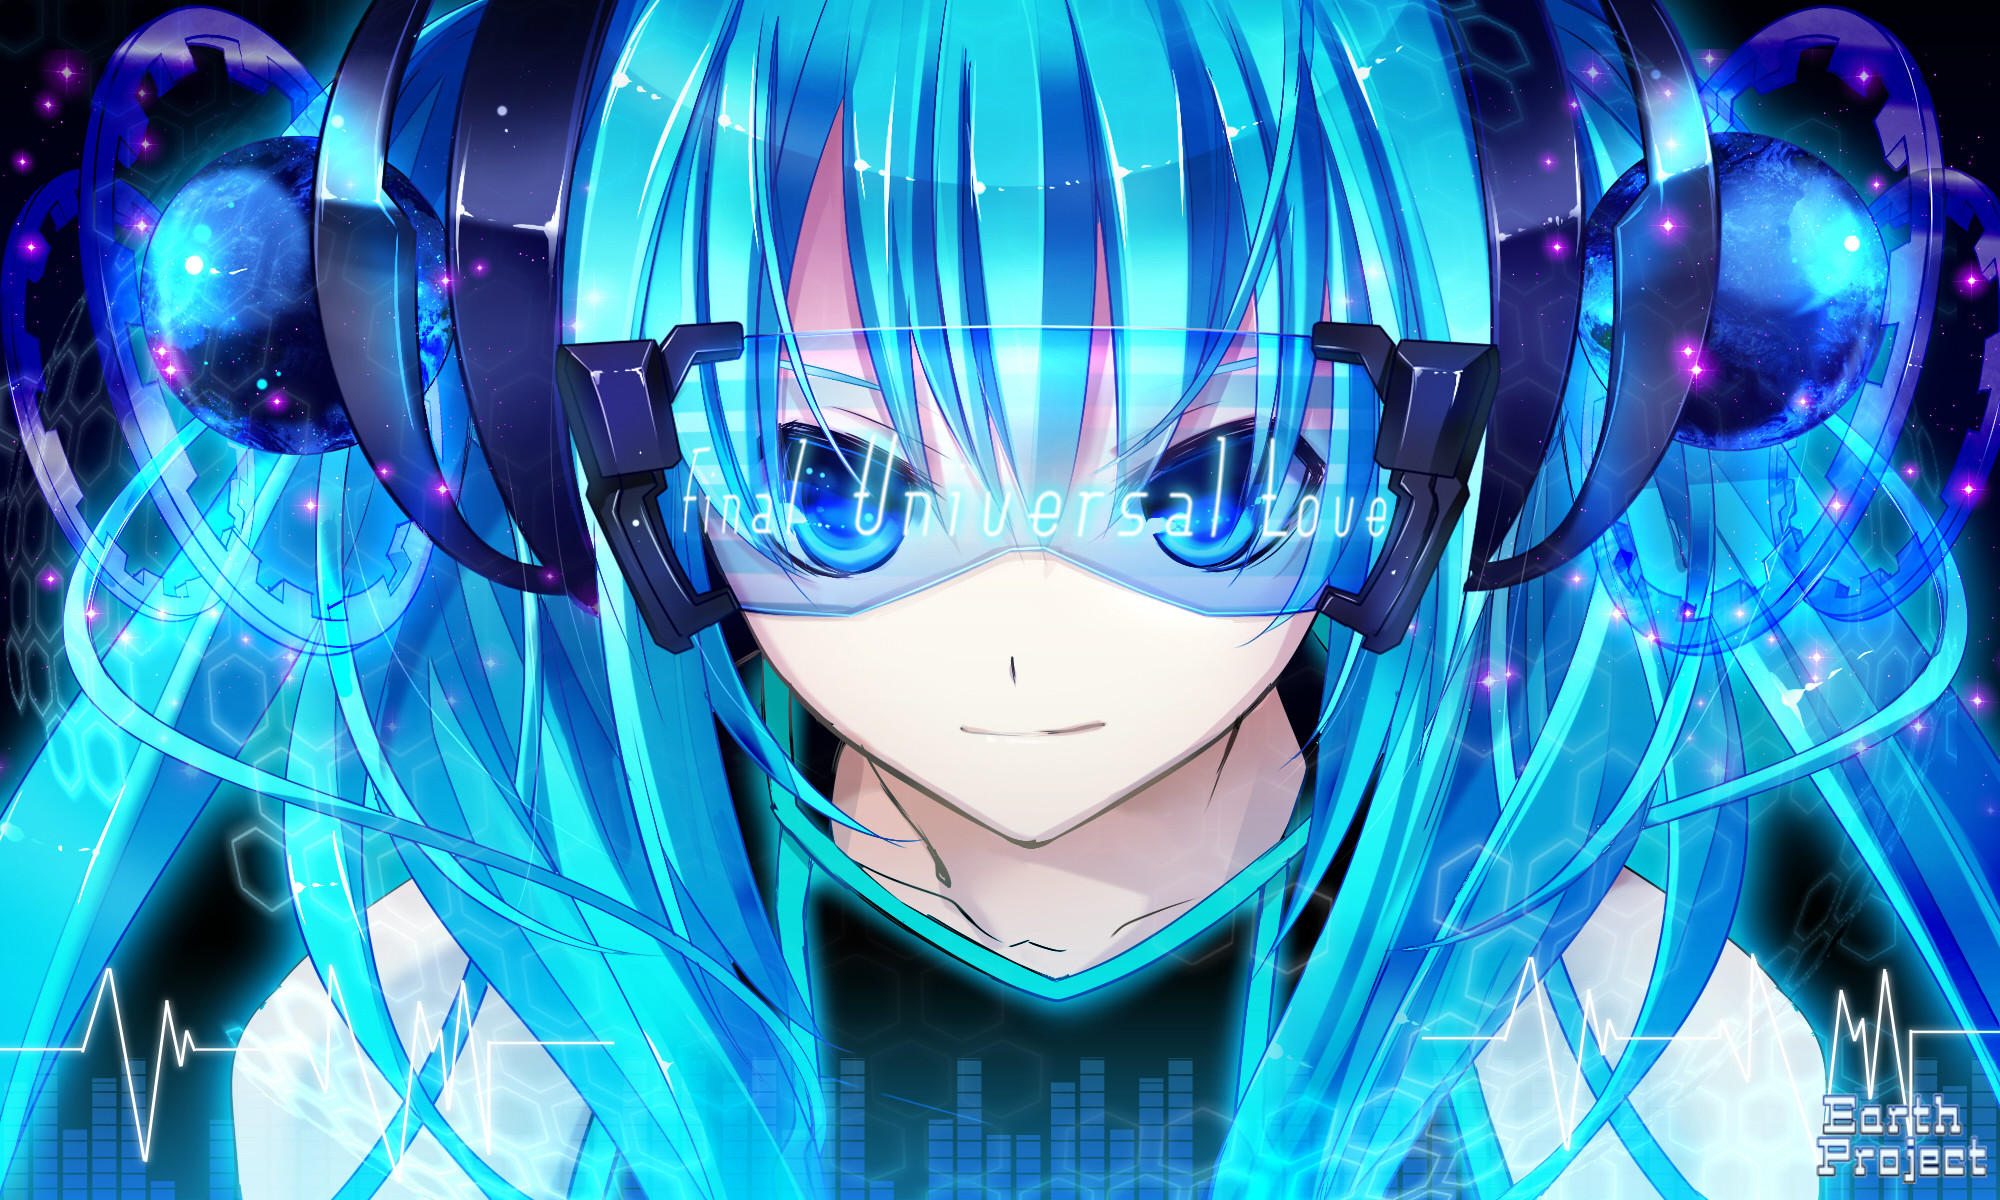 Res: 2000x1200, HD Wallpaper | Background Image ID:215588.  Anime Vocaloid